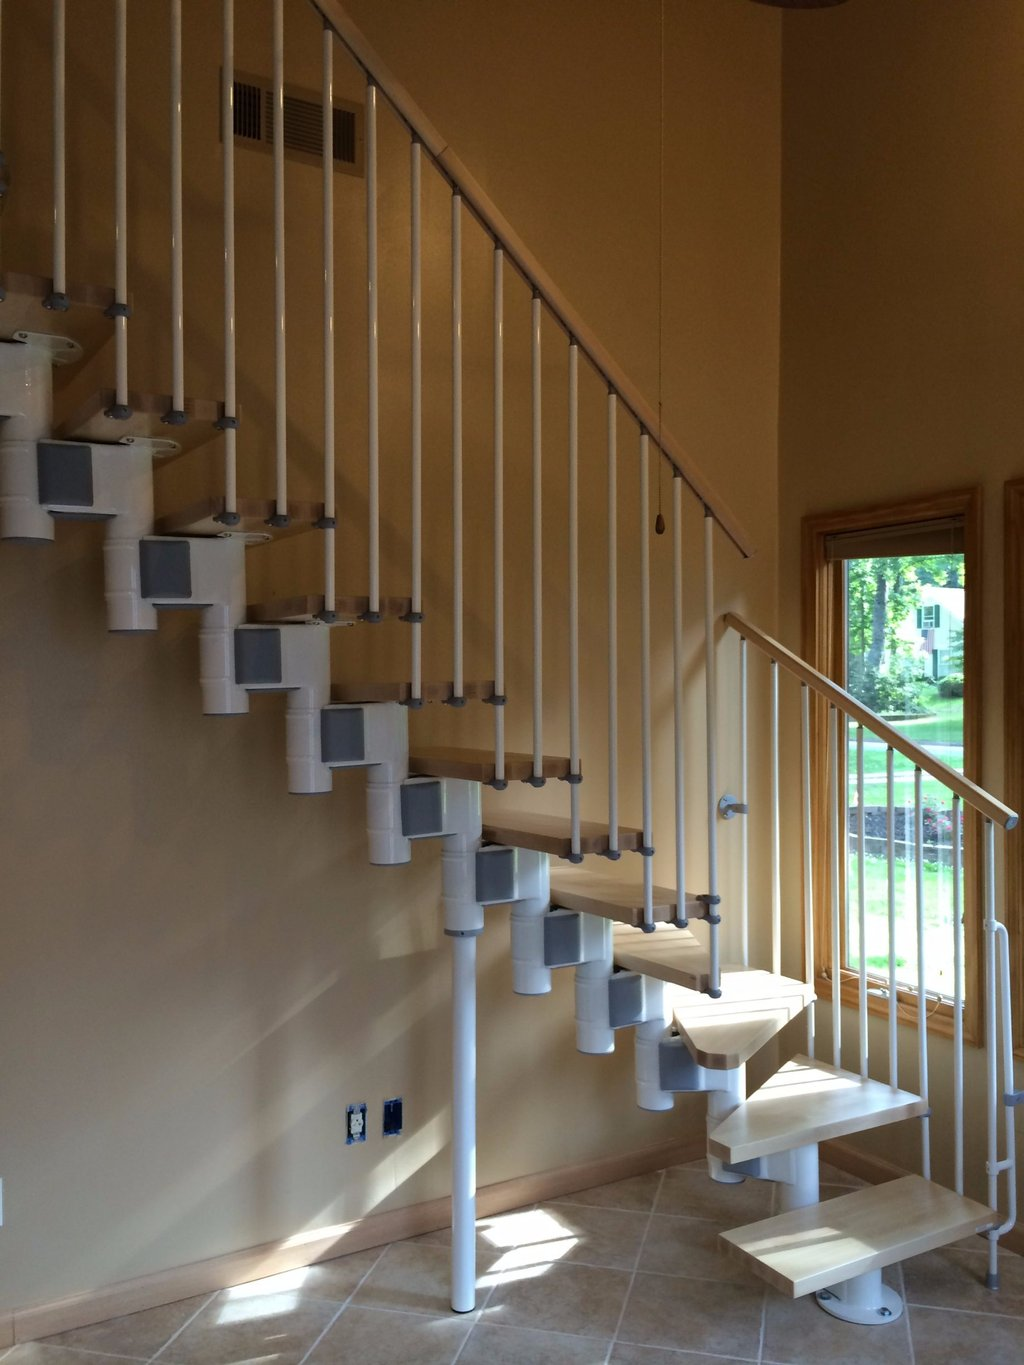 Arke Kompact White Grey Beachwood Stair Solution Outdoor Wooden Spiral Staircase